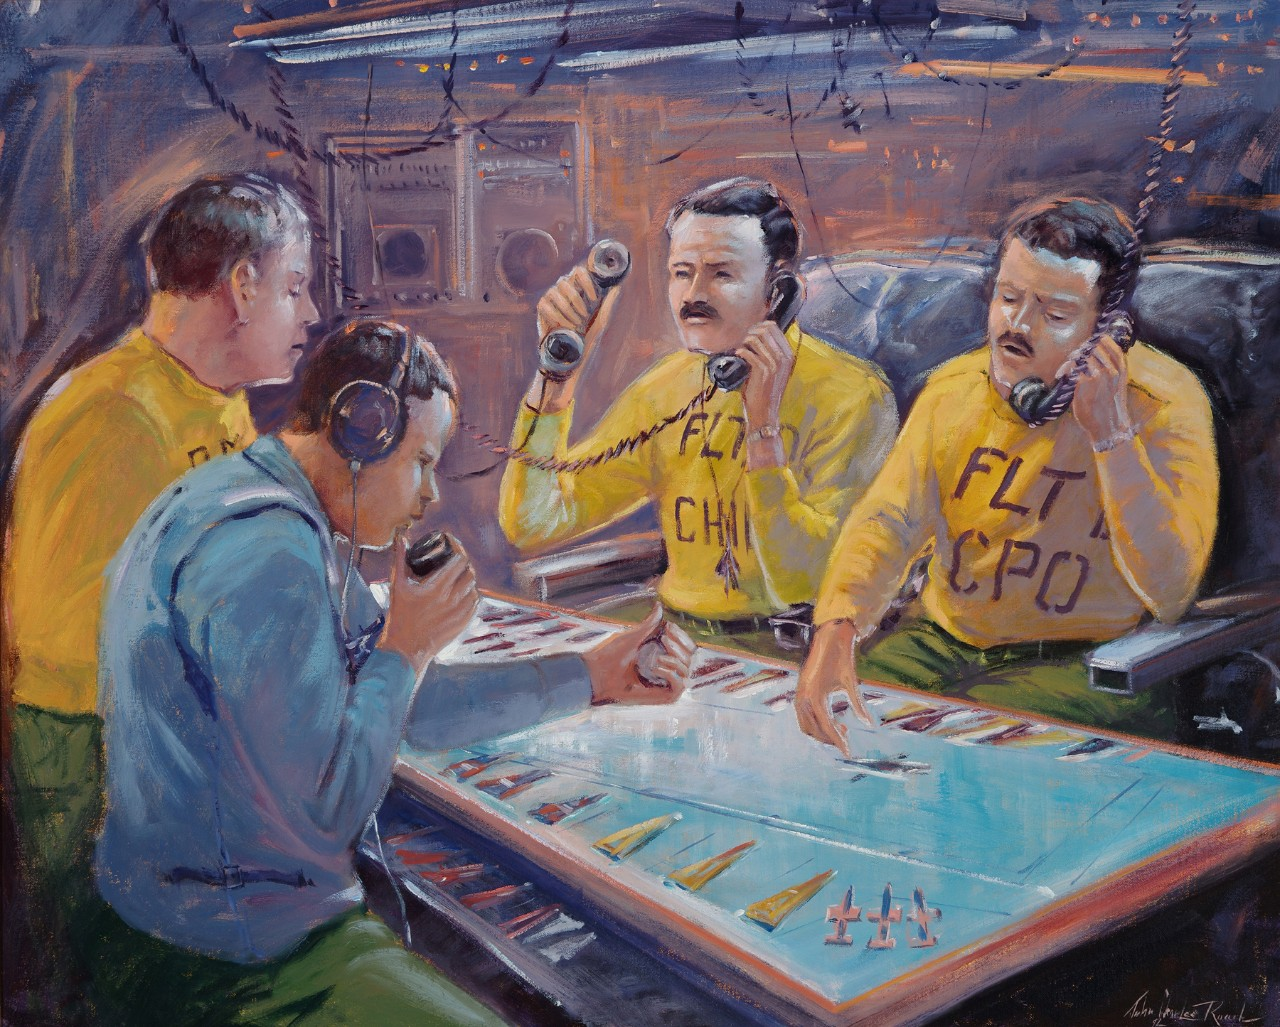 Four men at a table; three are wearing yellow shirts, two are talking into phones, one man wearing a blue shirt as a headset.